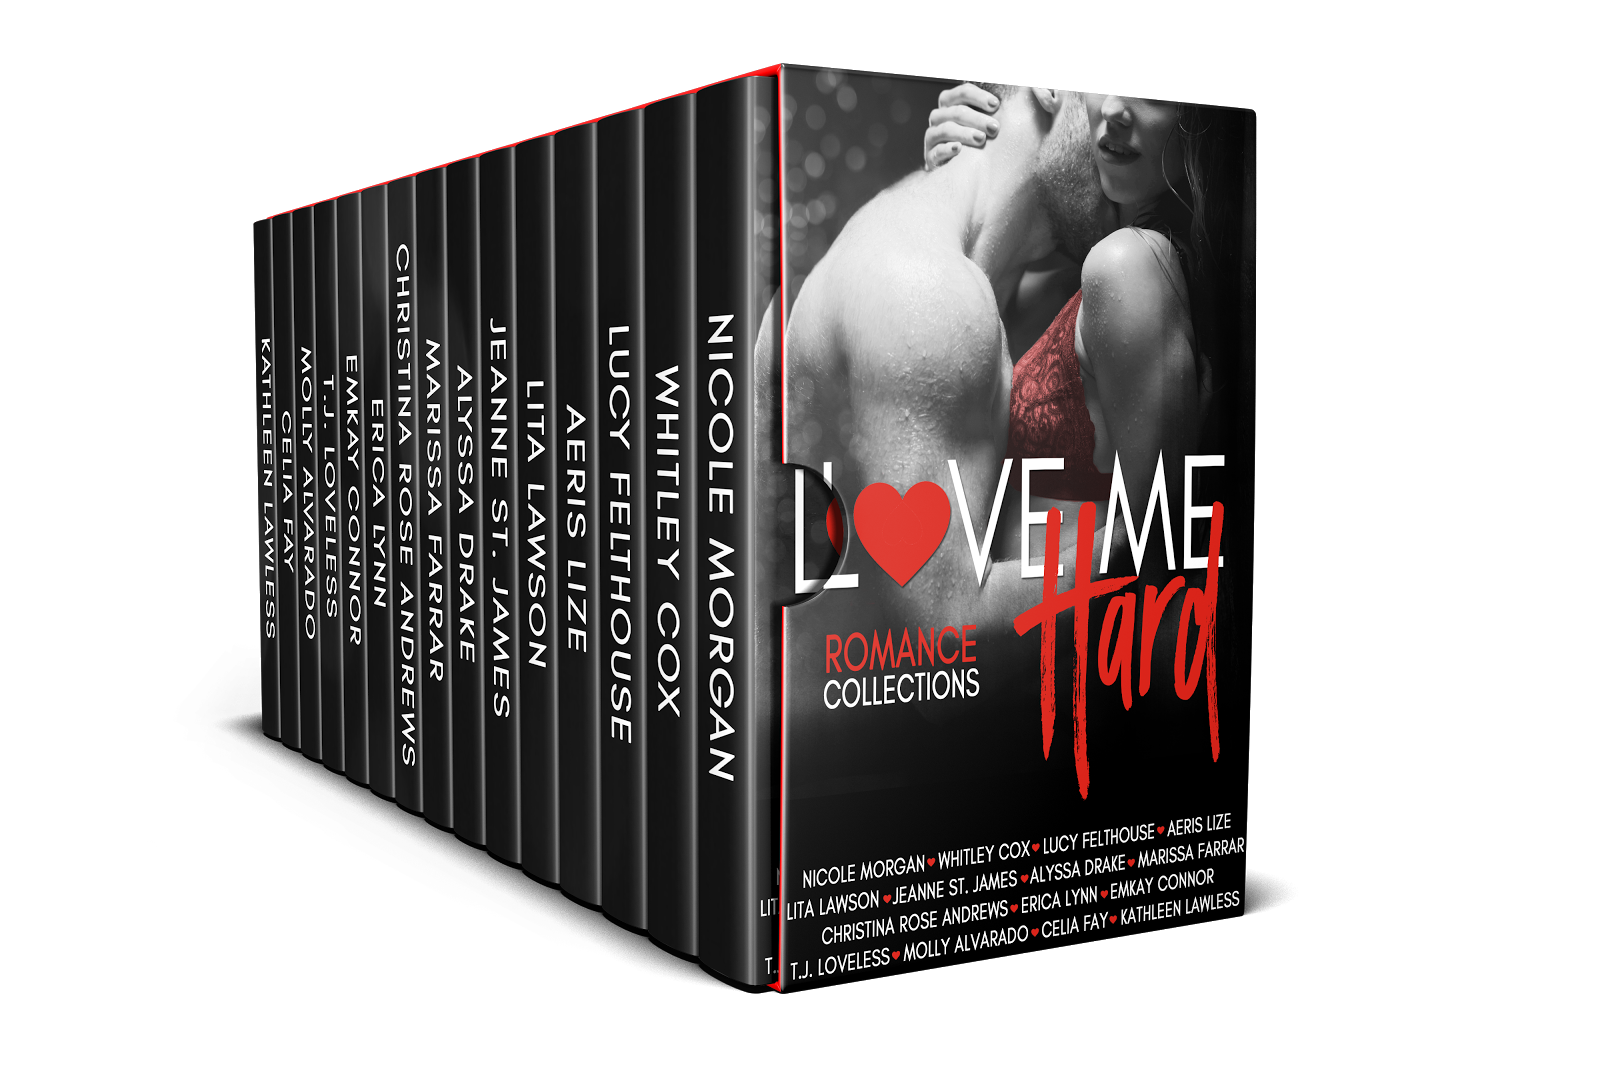 Love Me Hard Featuring Whitley Cox, Jeanne St. James and Erica Lynn